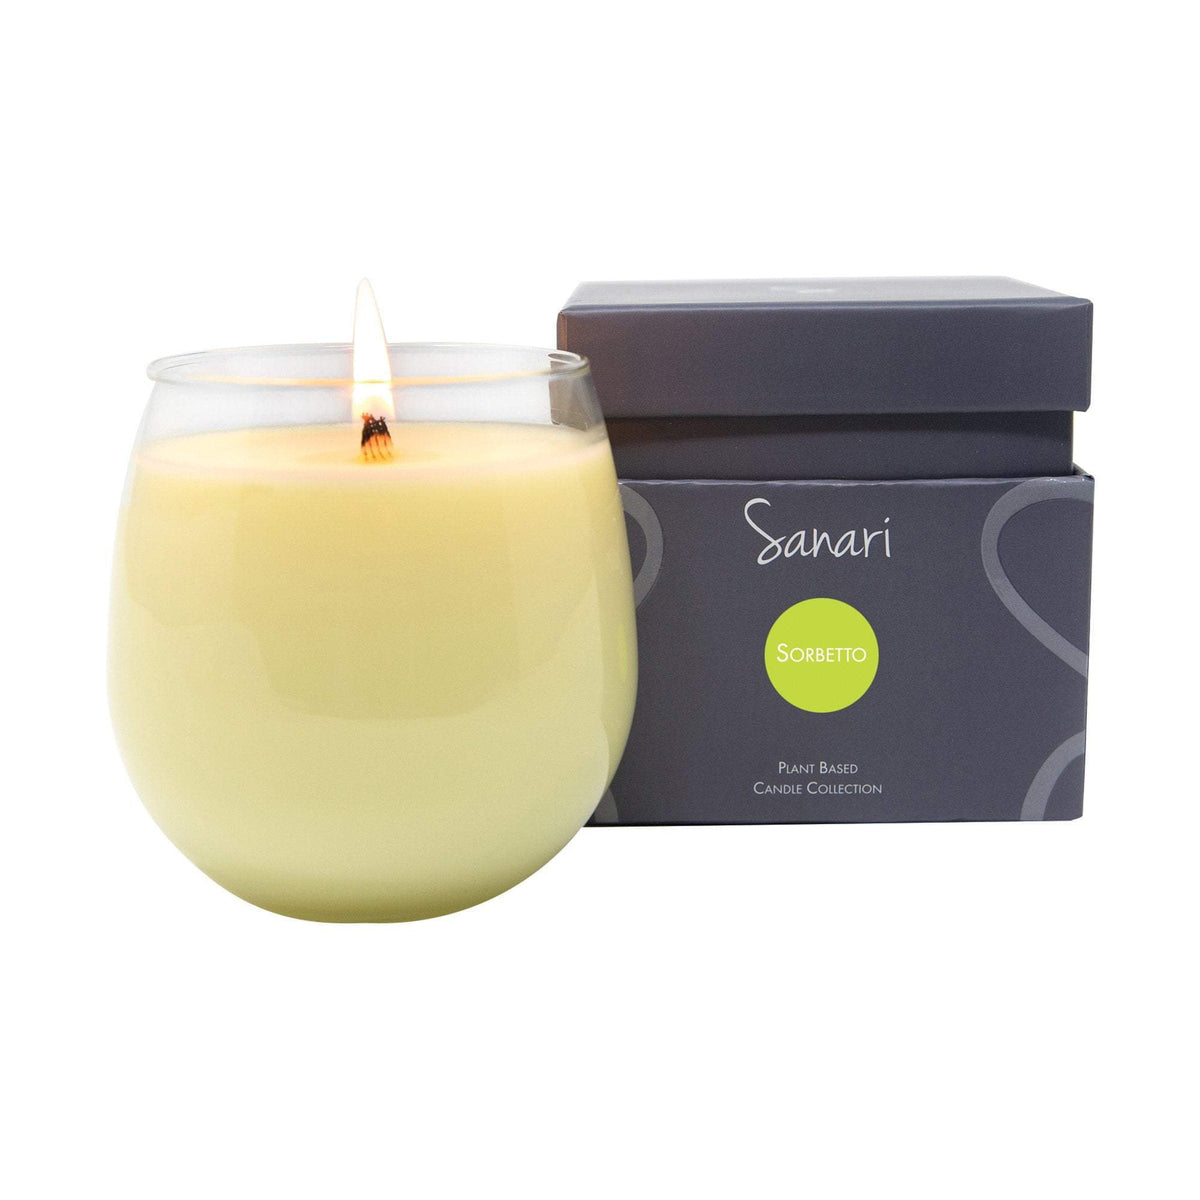 Candles Sanari Candle / Sorbetto / 16oz